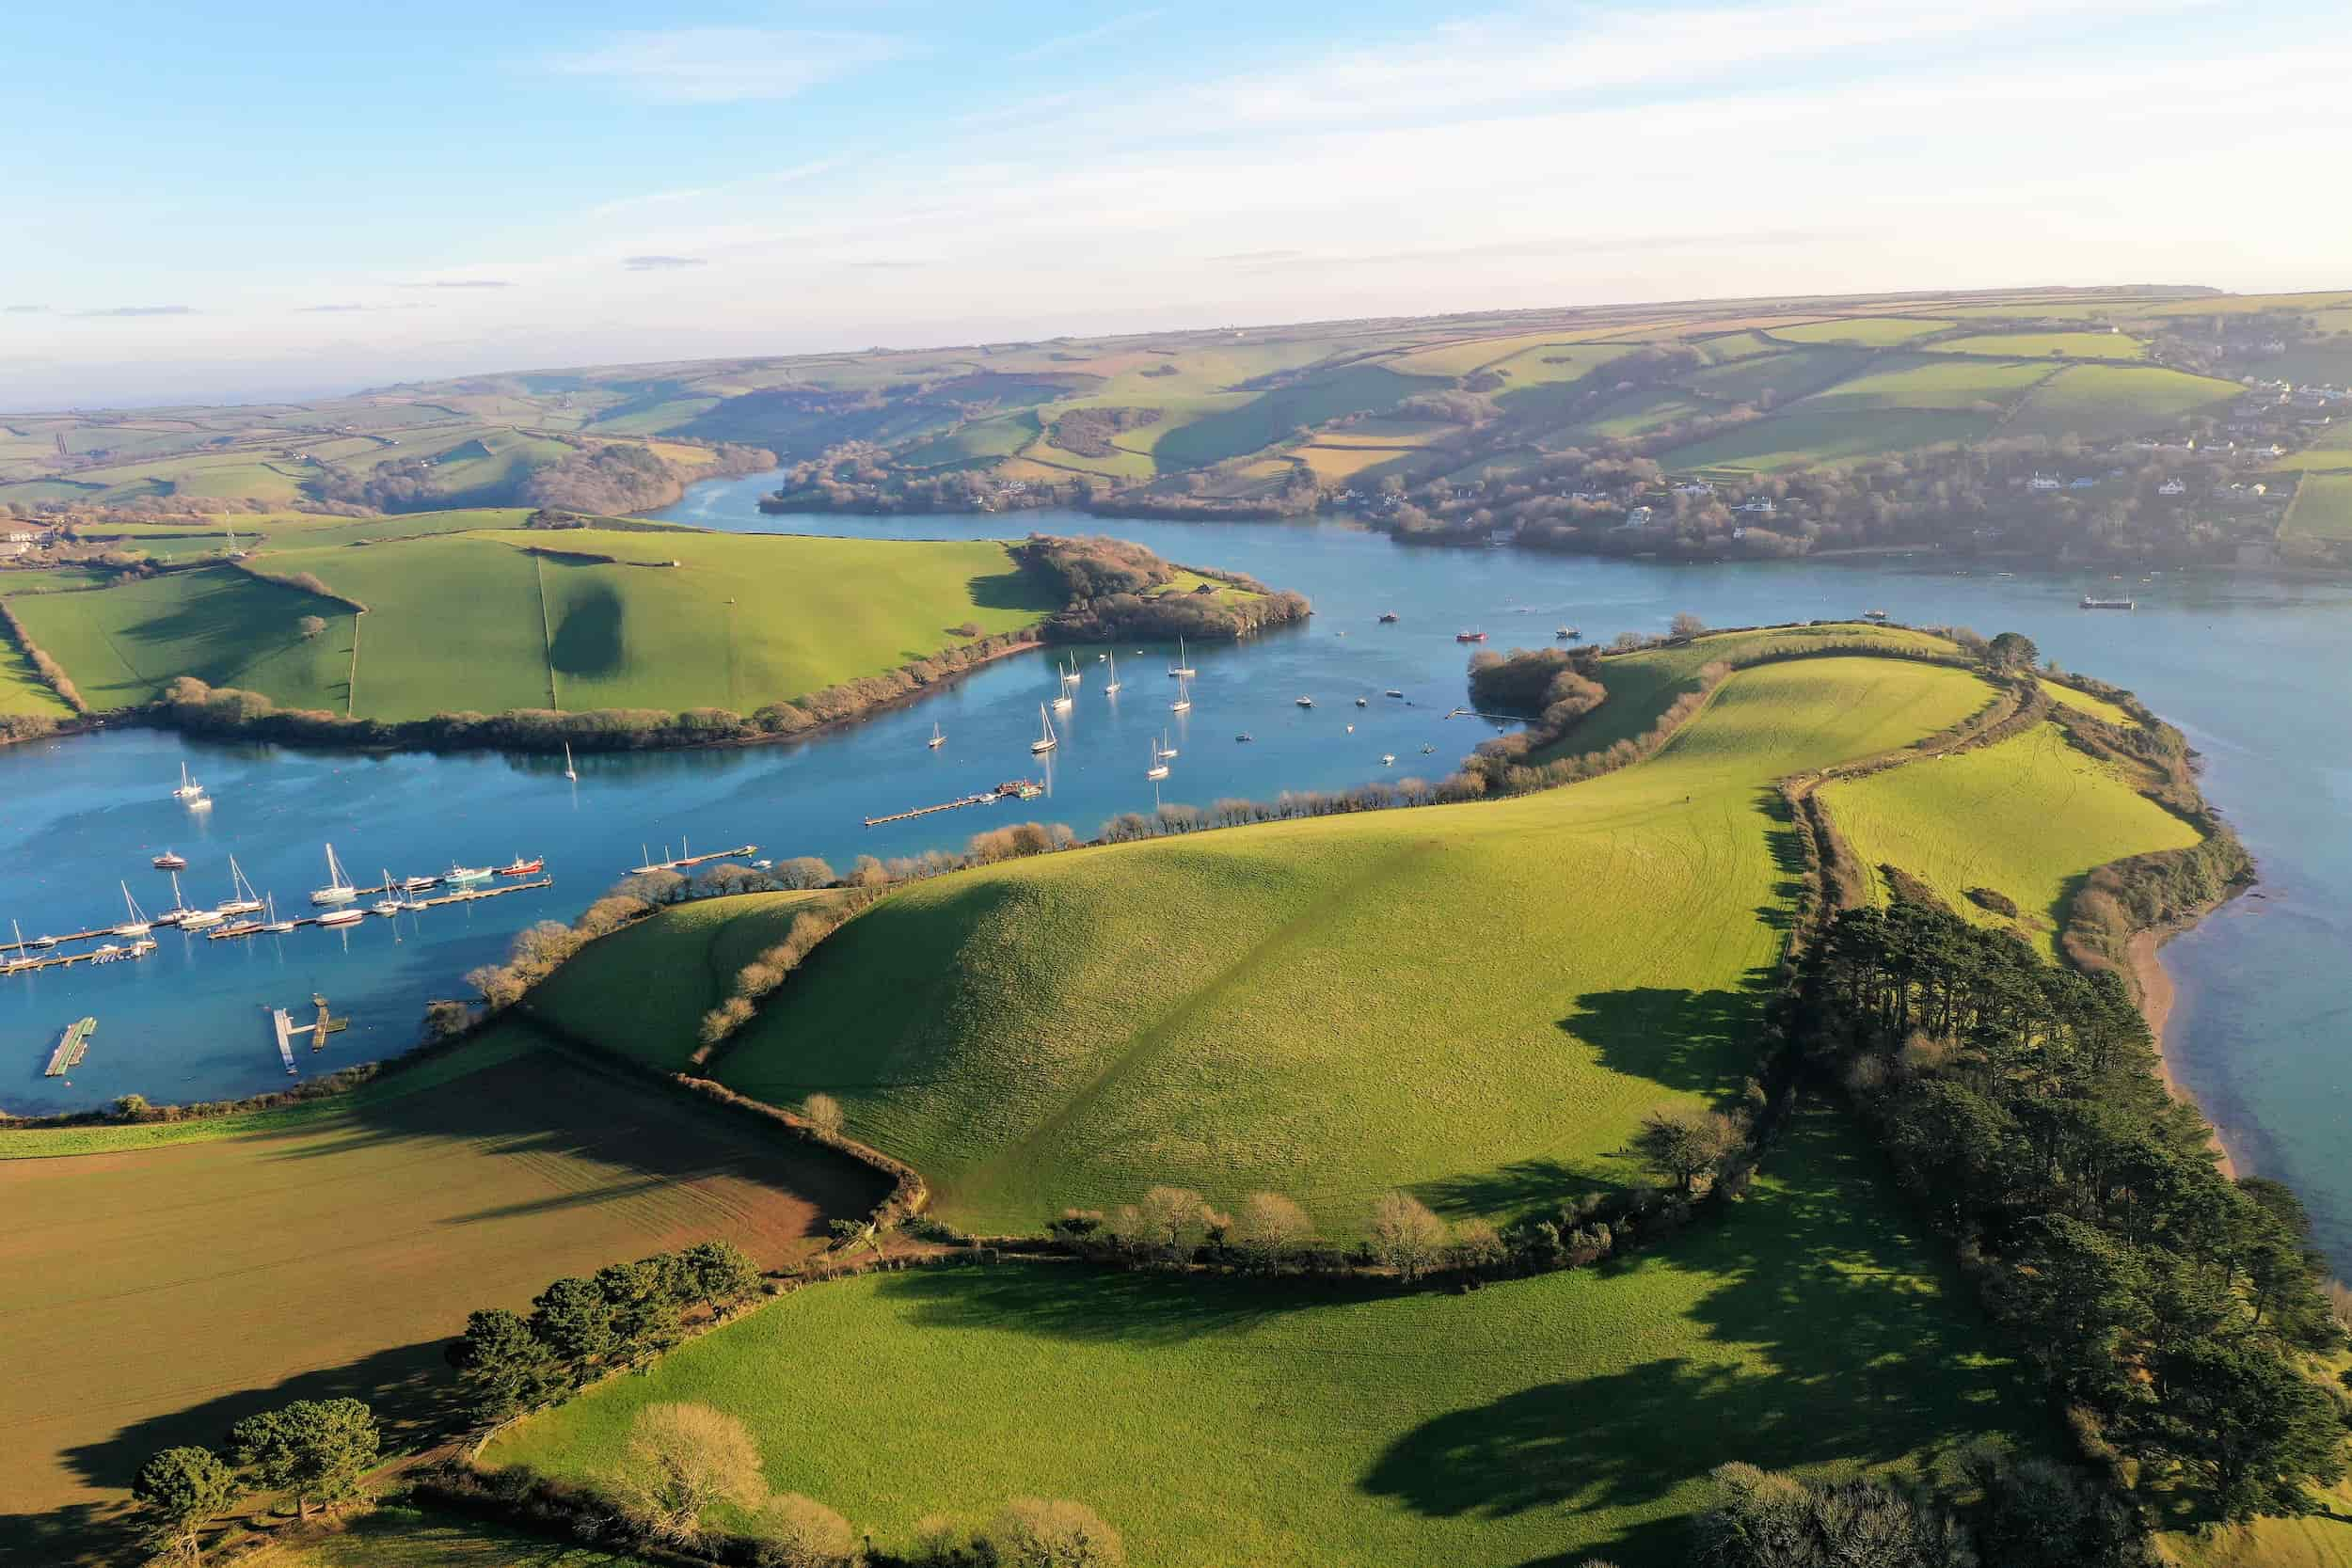 salcombe estuary from the air with boats